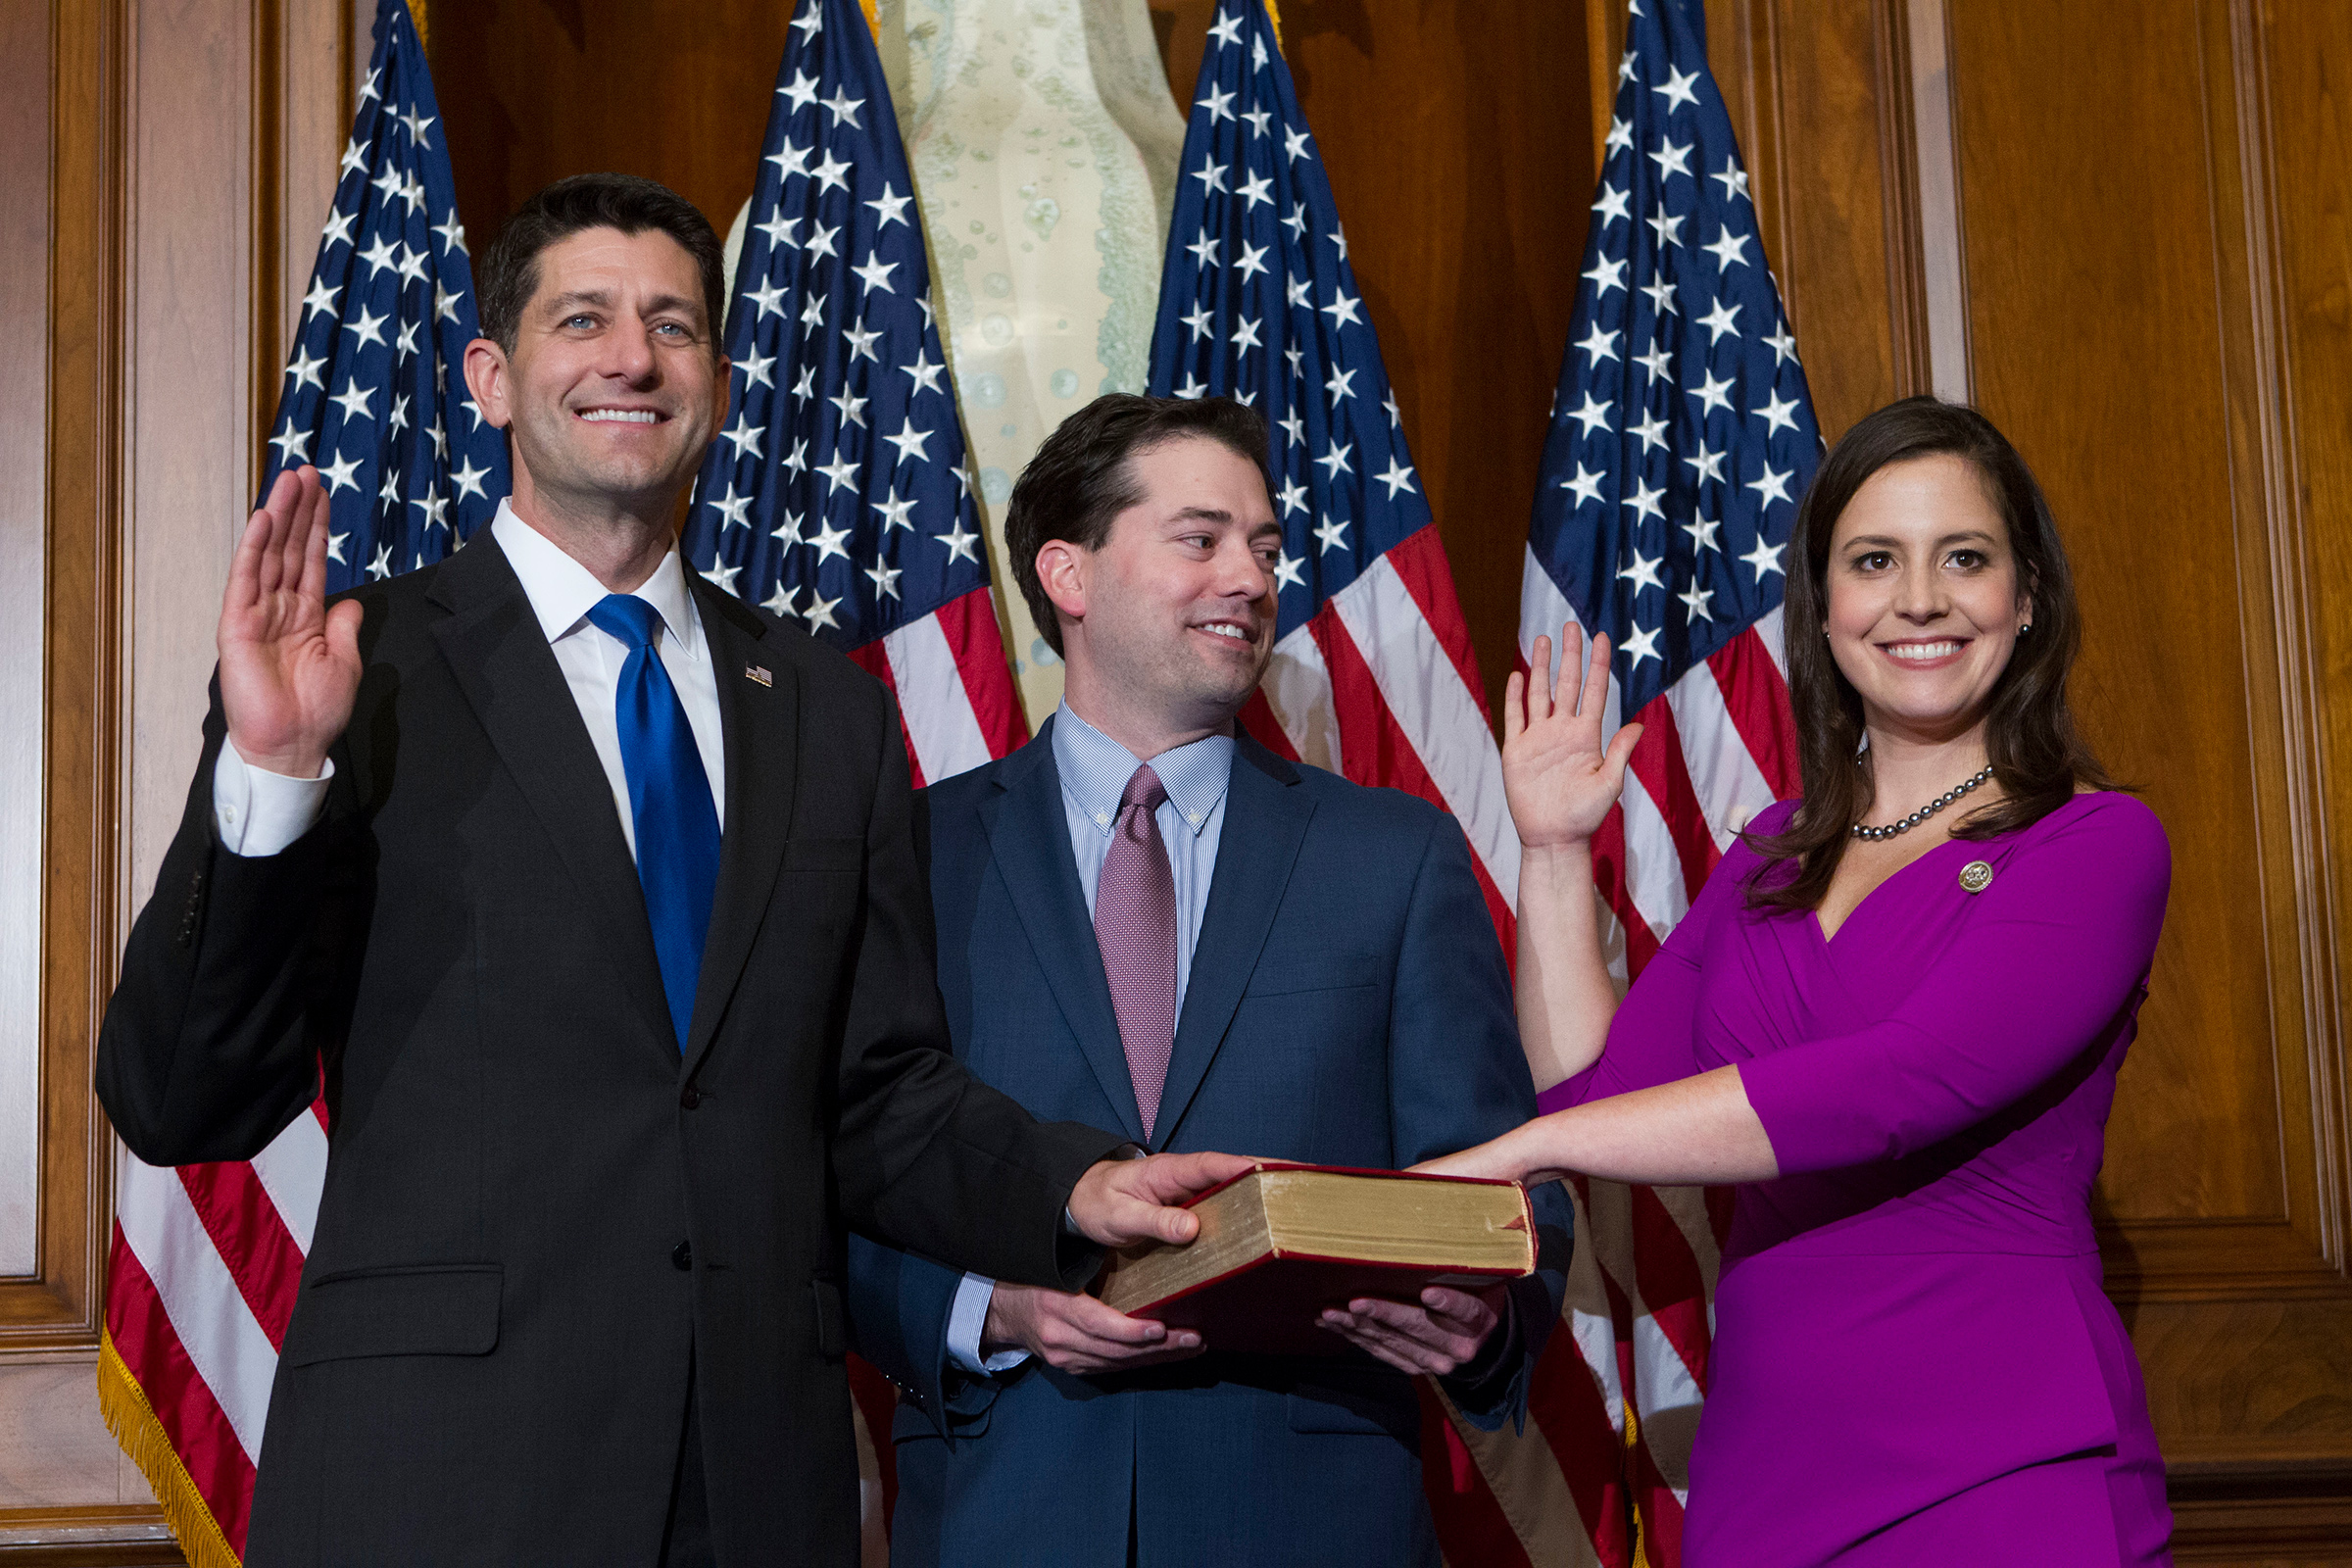 Former House Speaker Paul Ryan administers the House oath of office to Elise Stefanik during a mock swearing in ceremony on Capitol Hill in Washington, Jan. 3, 2017, as the 115th Congress began.